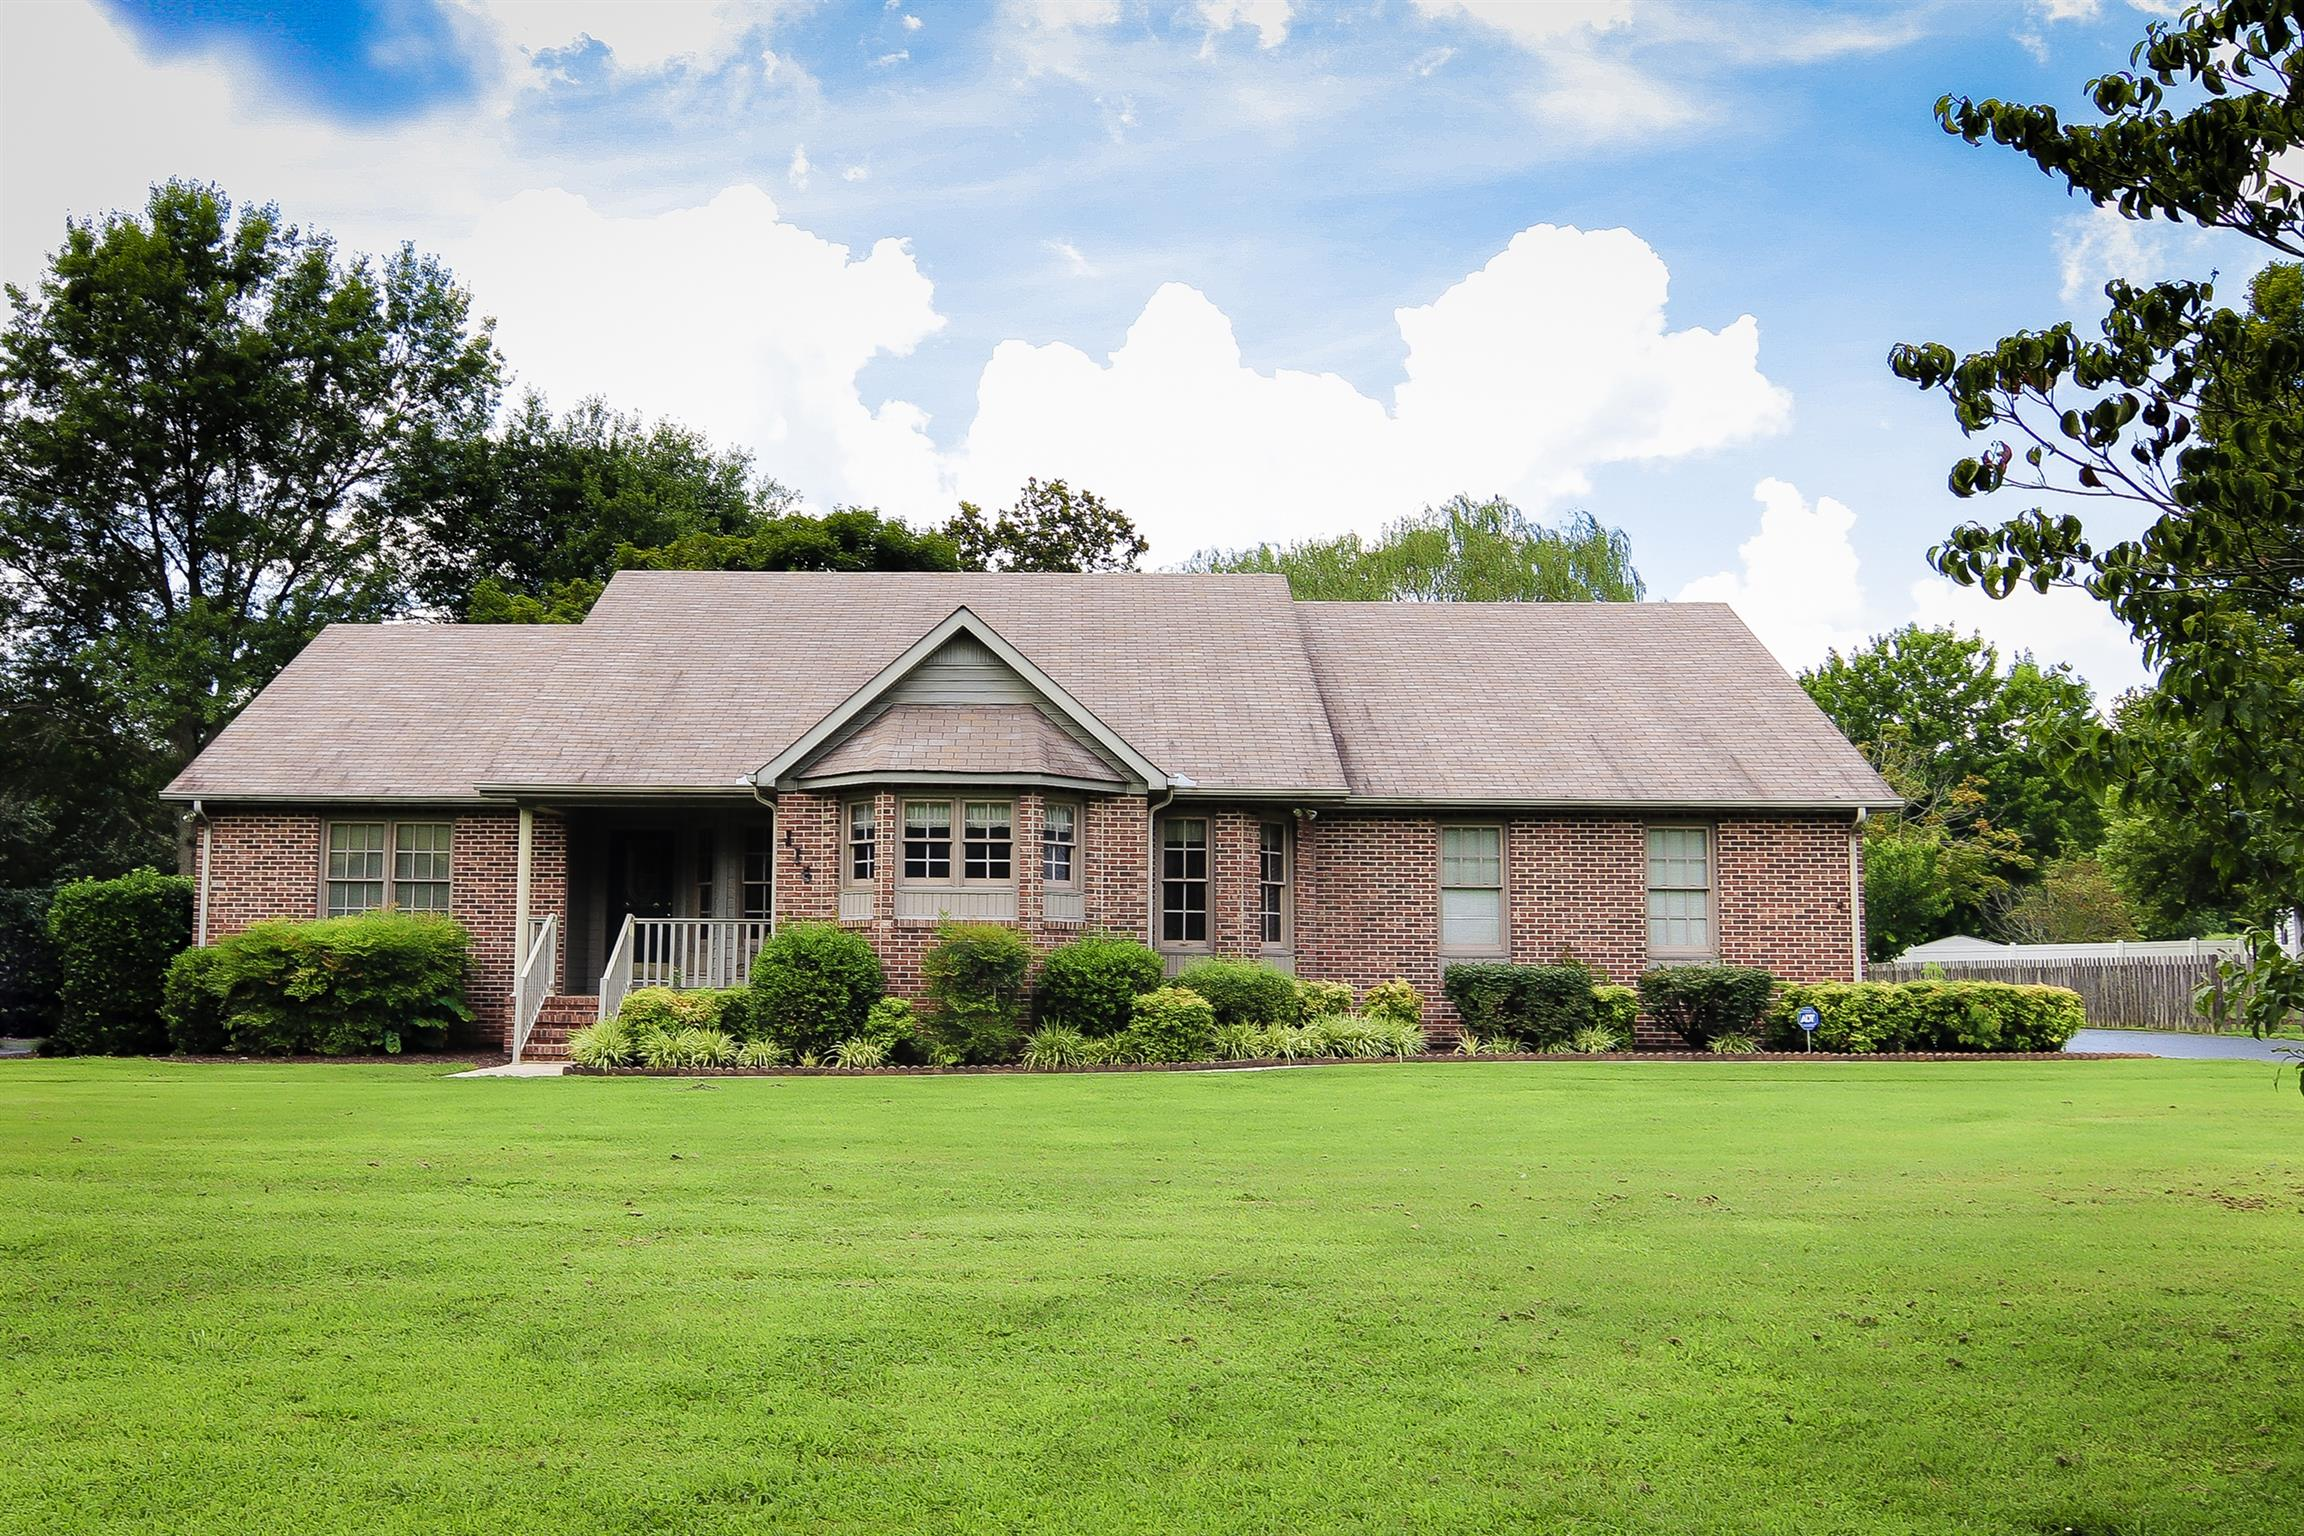 116 Breckenridge Rd, Tullahoma, TN 37388 - Tullahoma, TN real estate listing